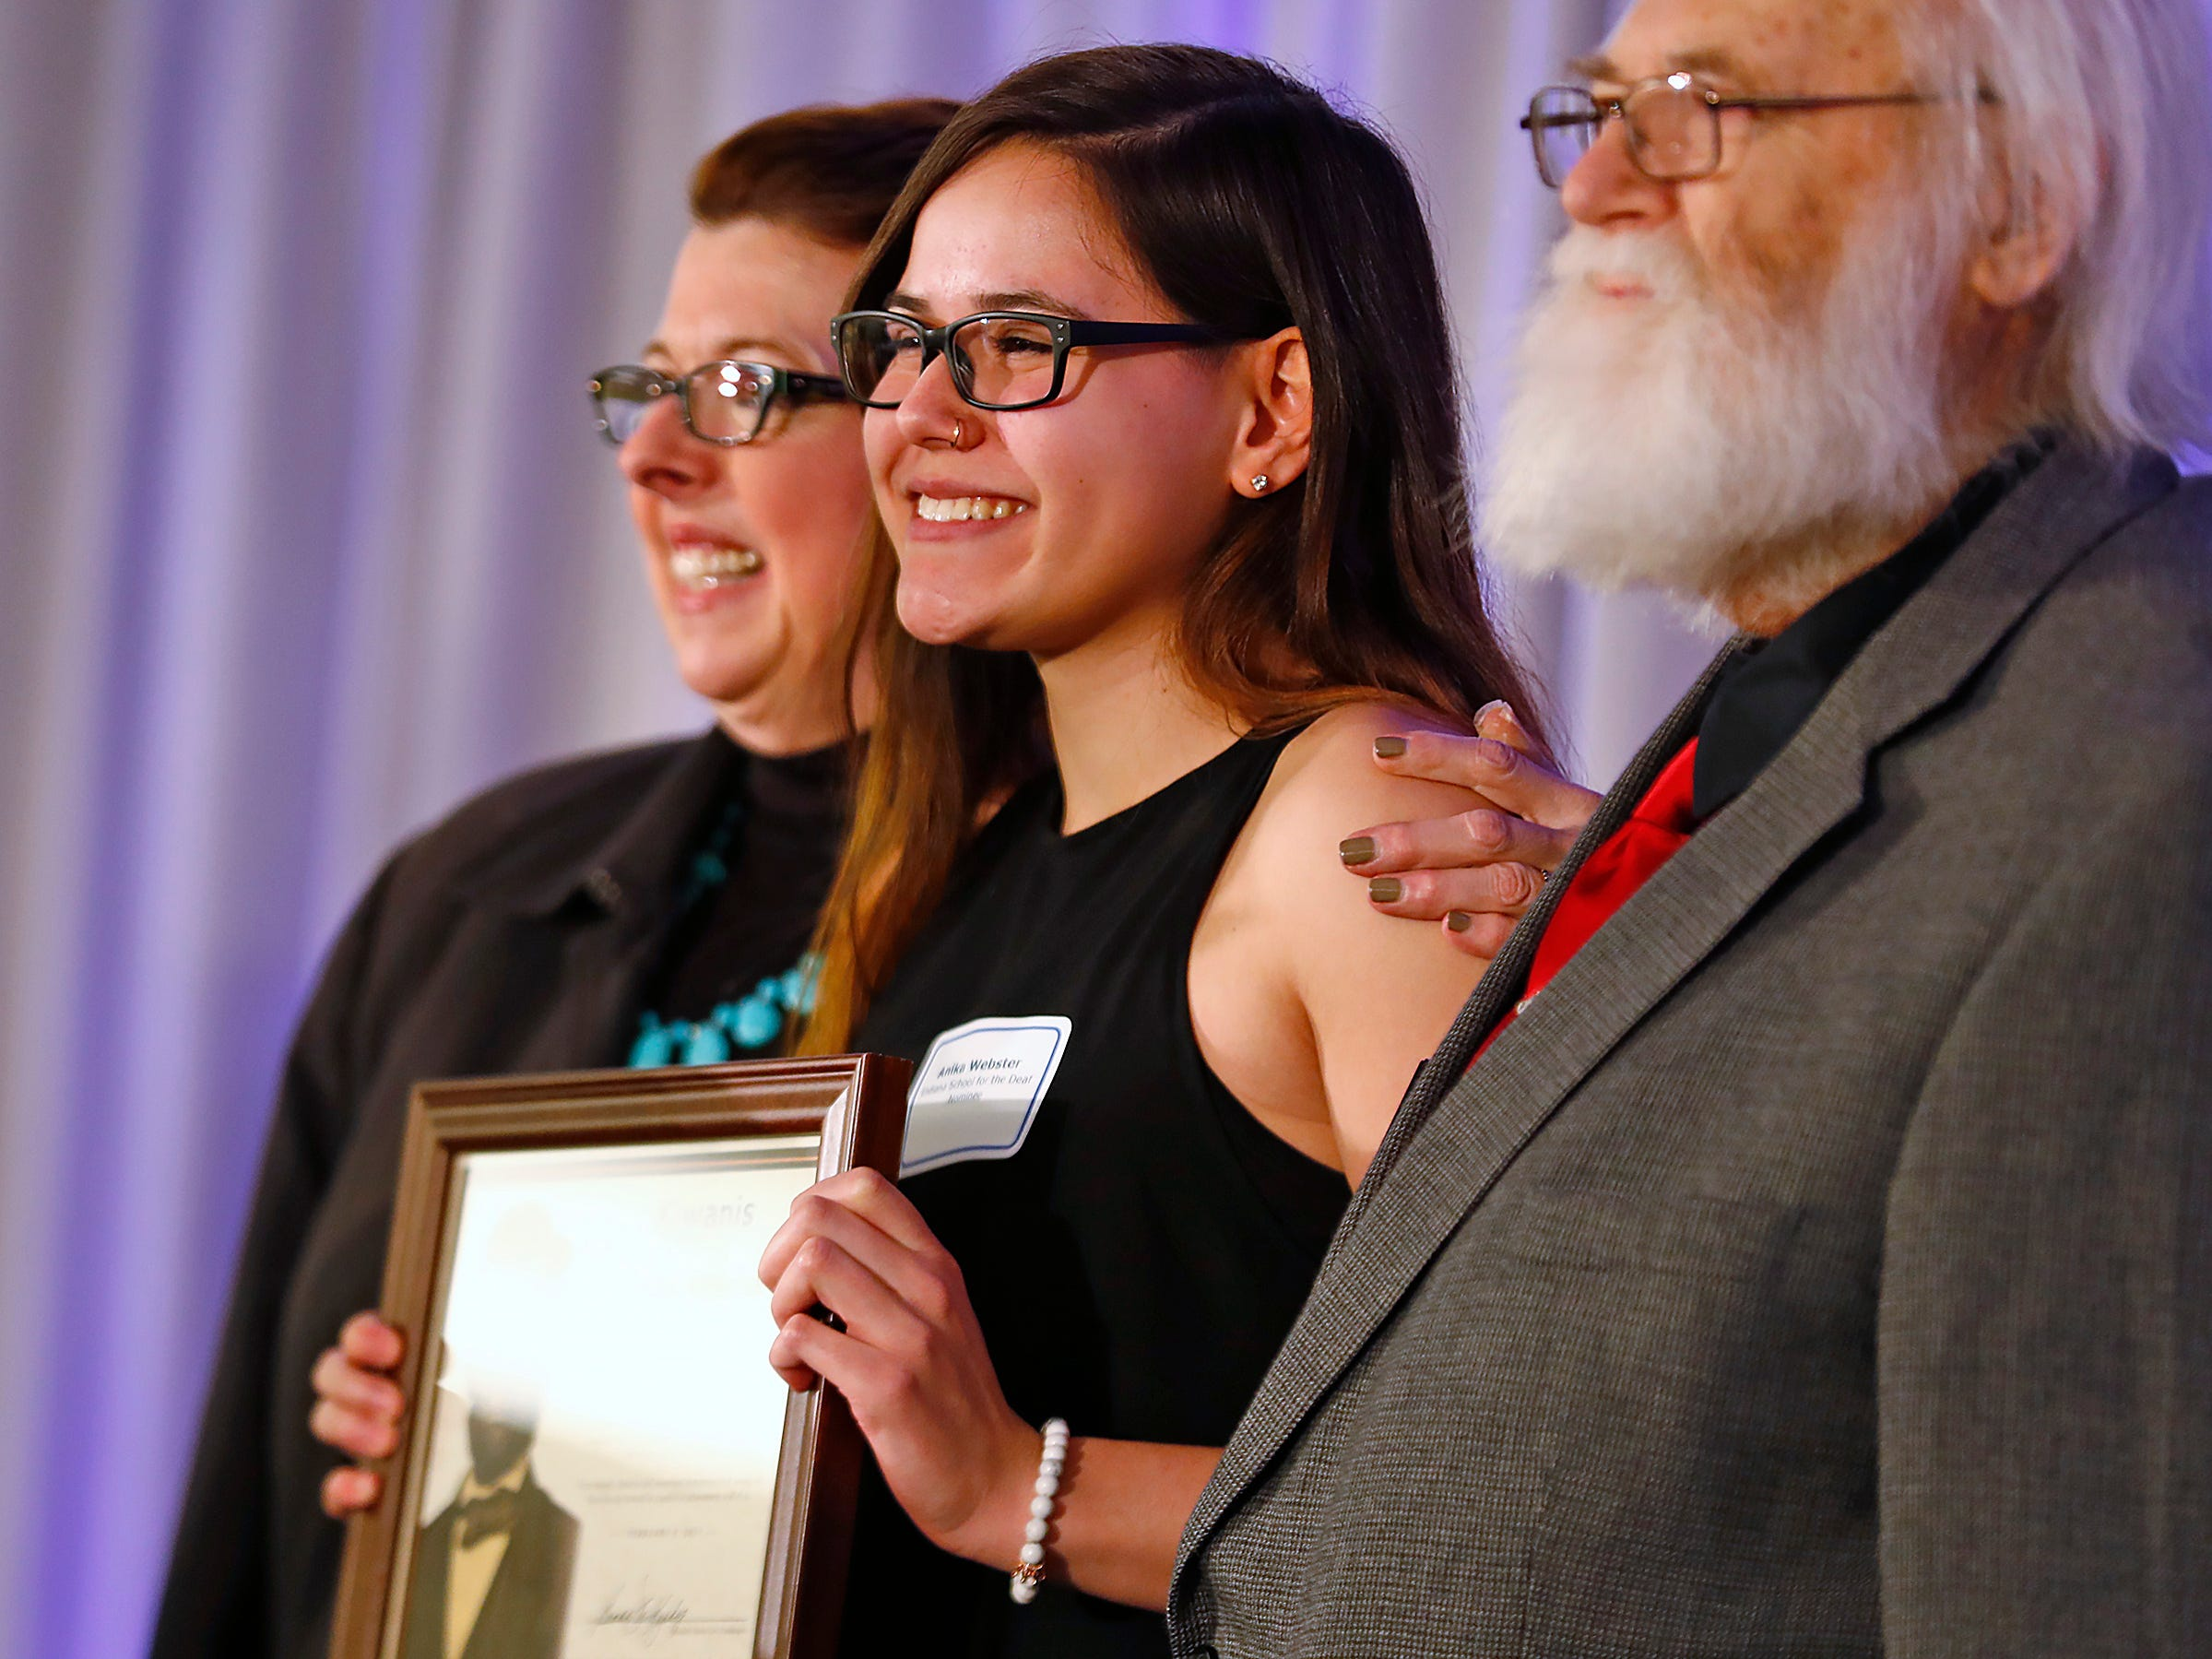 Indiana School for the Deaf student Anika Webster, center, is honored with a Circle of Valor award at the 44th Annual Abe Lincoln Awards Program, Friday, Feb. 8, 2019. The Kiwanis Club of Indianapolis program was held at Ivy Tech Community College.  20 high school student were honored at the annual event which celebrates overcoming adversity in life to succeed.